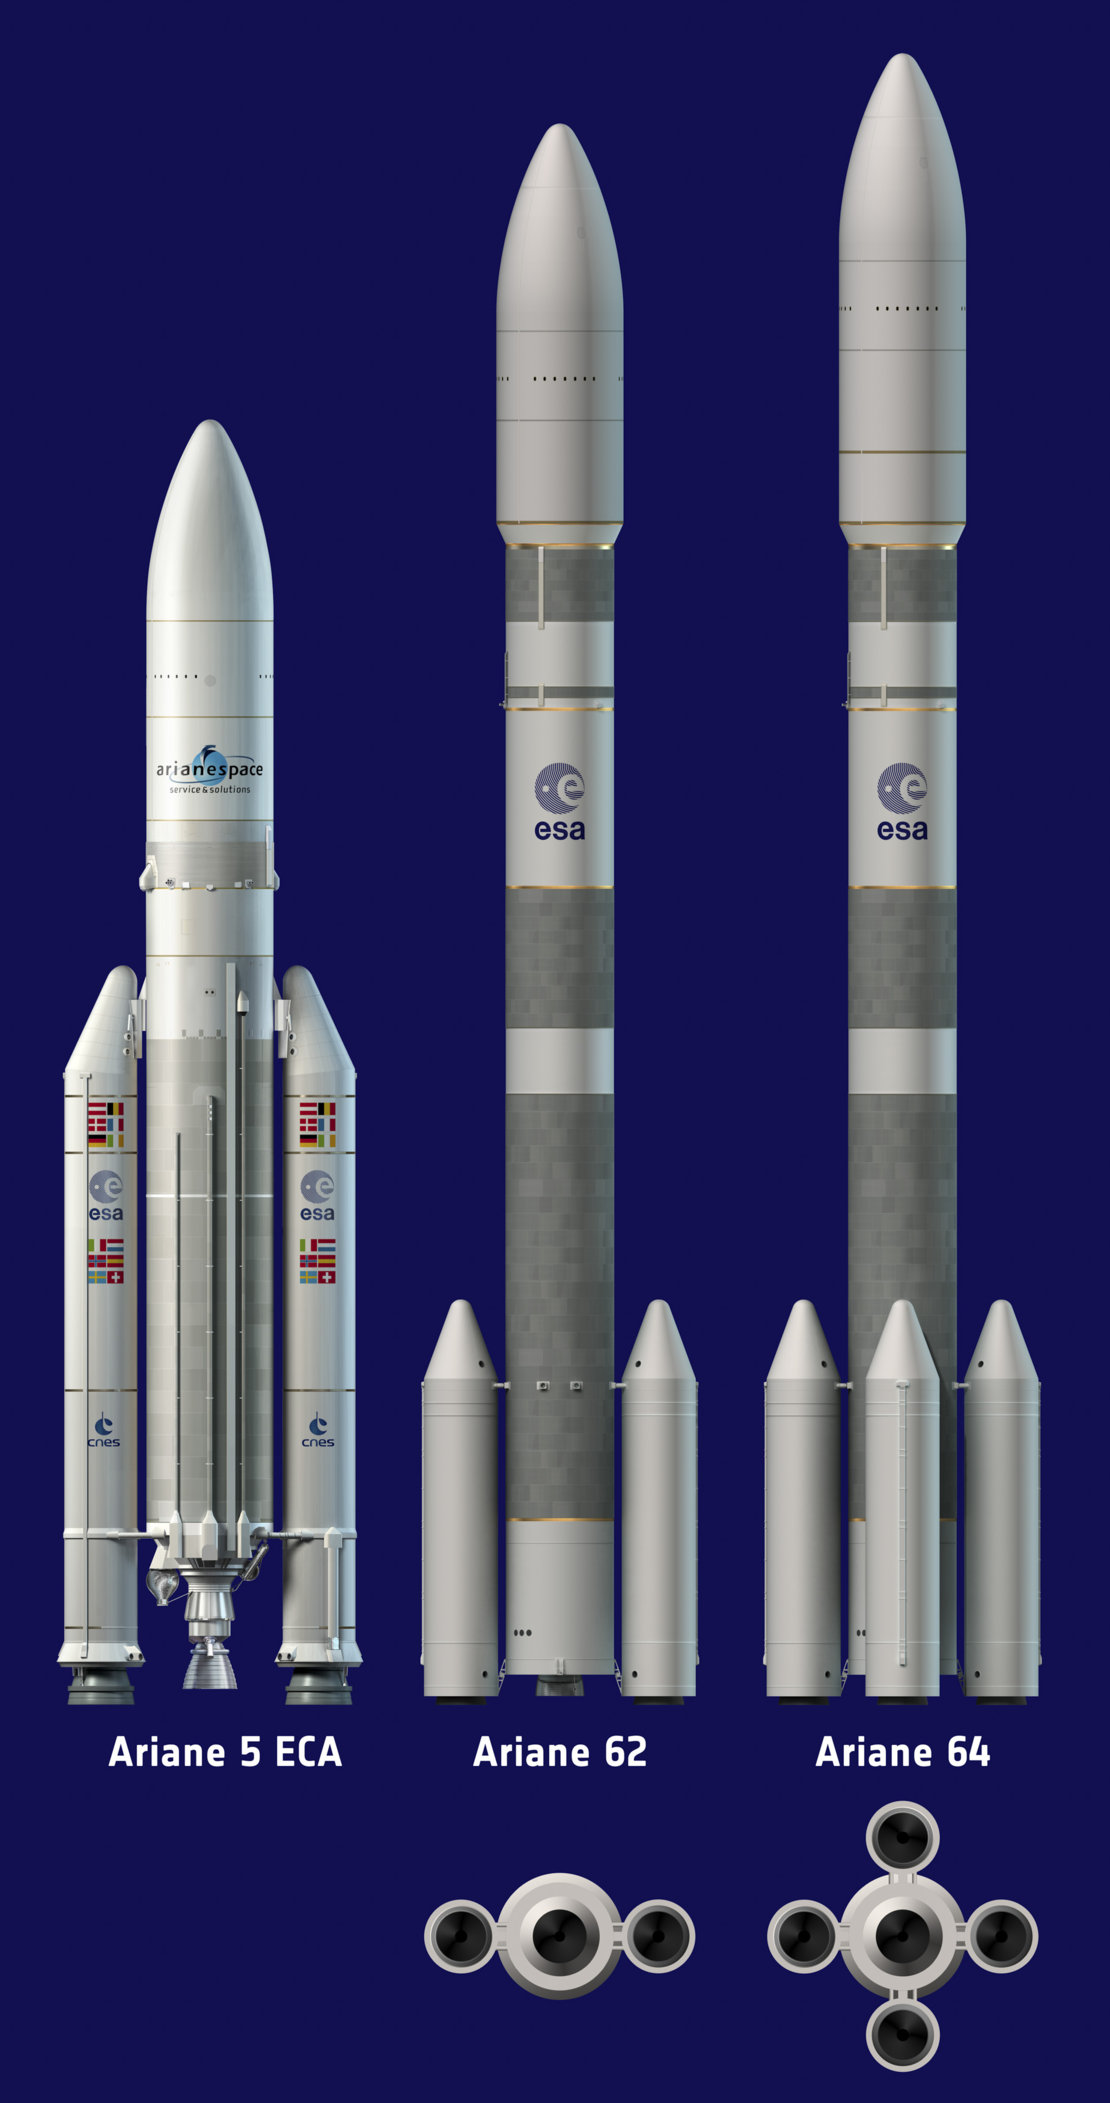 Artist's view of Ariane 5 ECA and the two configurations of Ariane 6